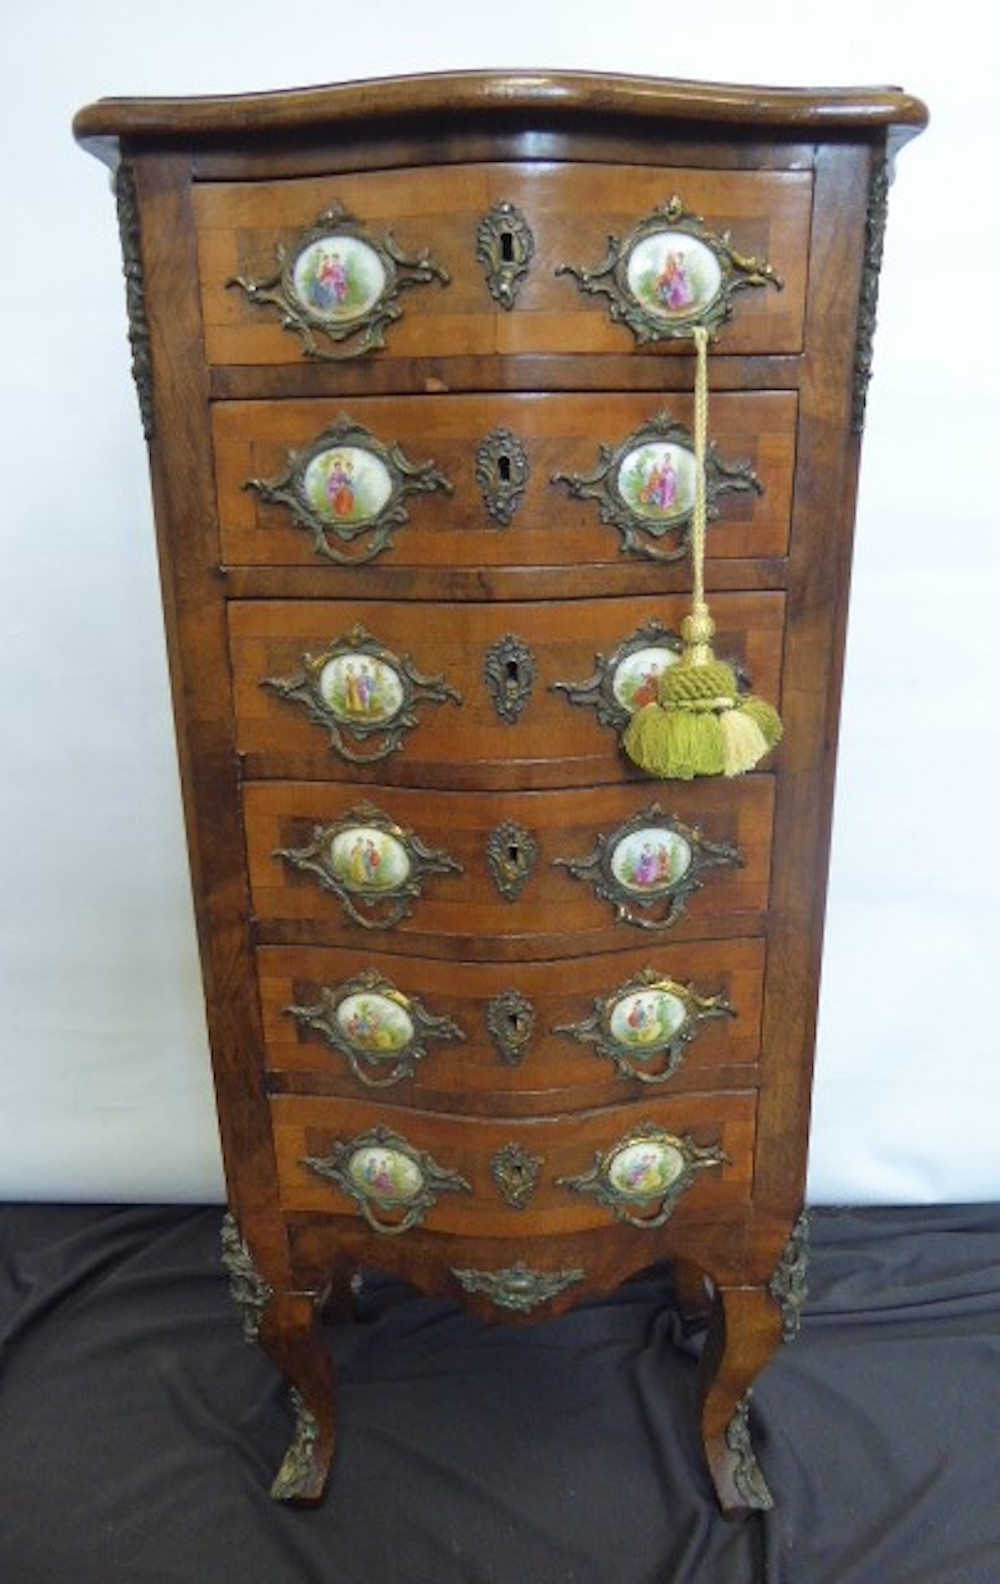 Serpentine Fronted Miniature Chest of Drawers £650